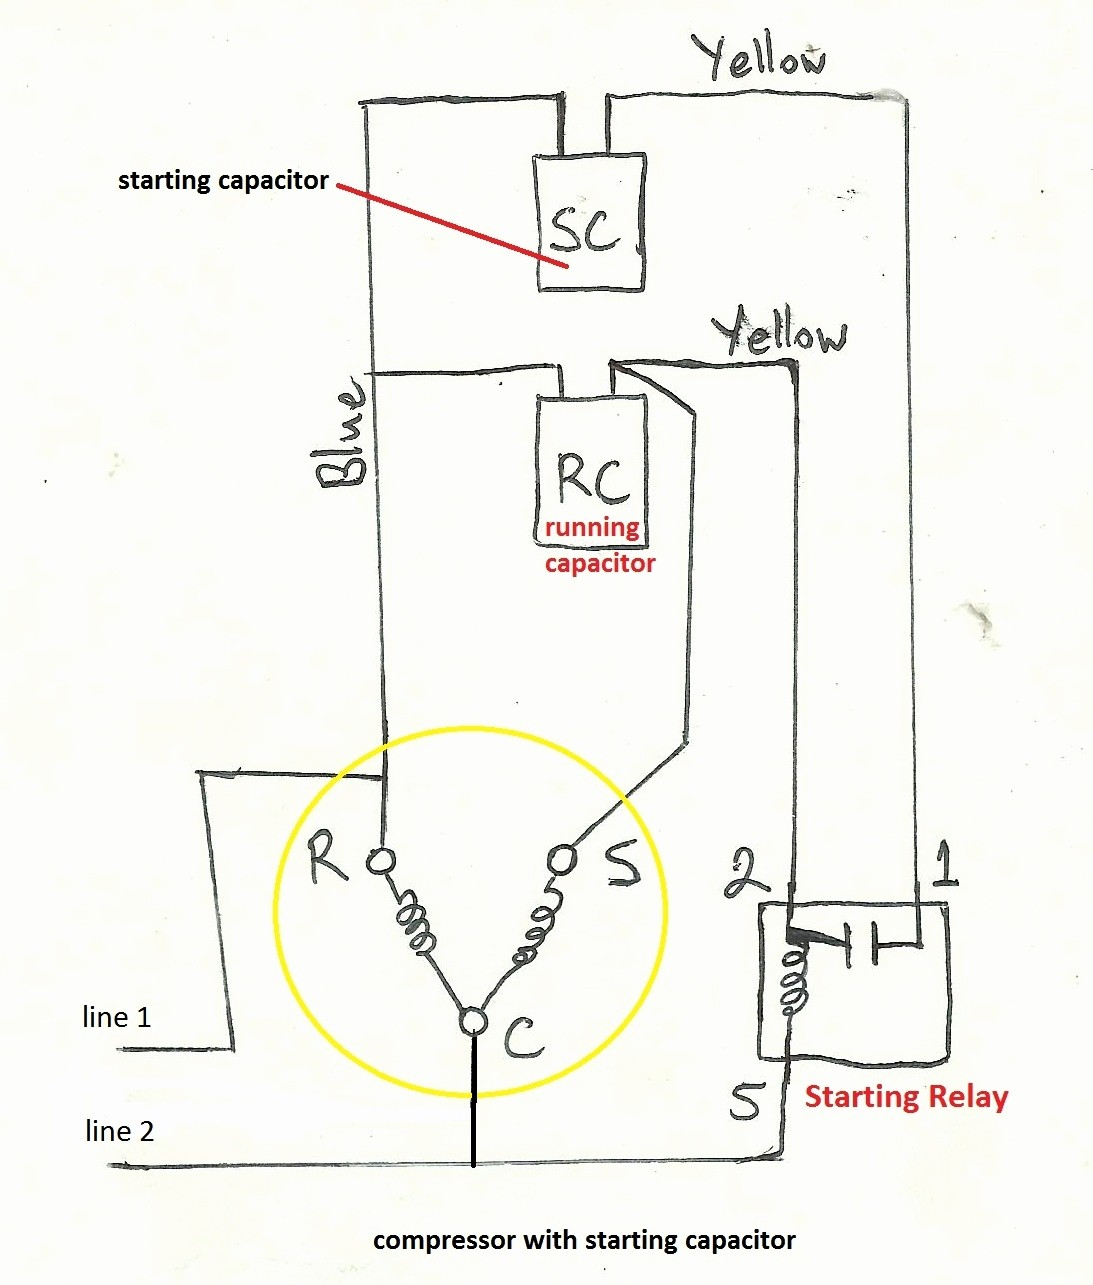 Wiring Diagram For Bristol Compressor | Wiring Diagram on